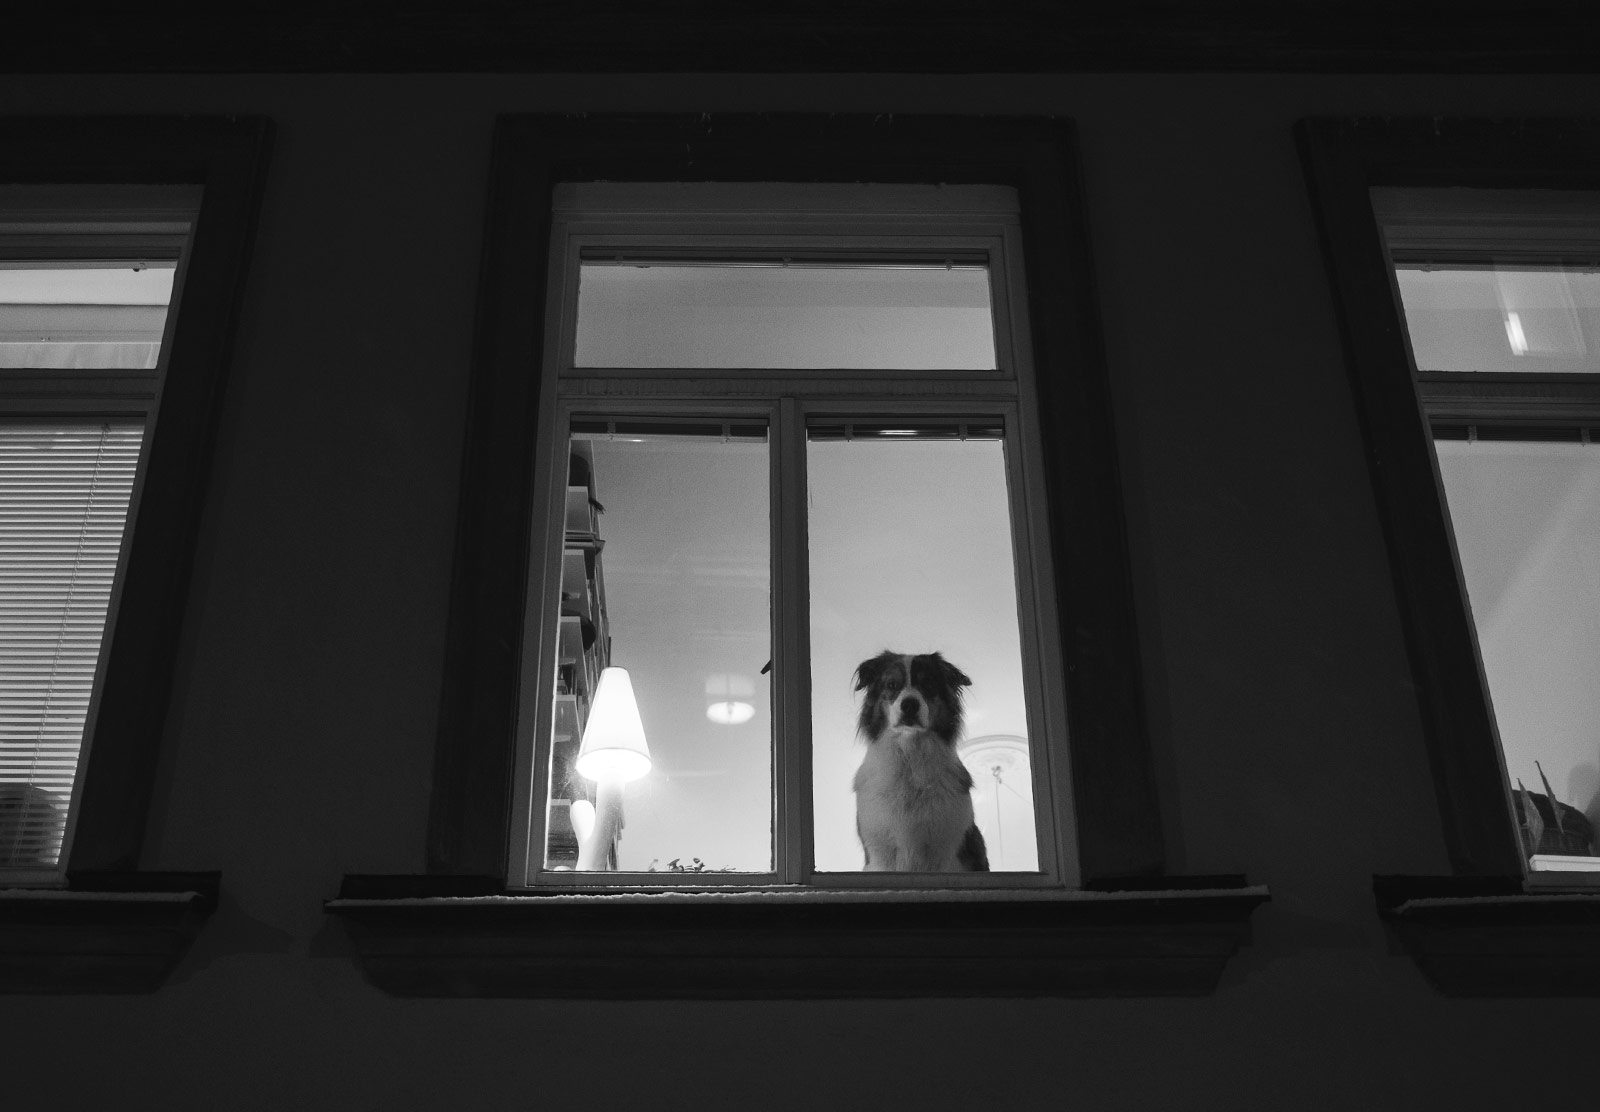 Dog looking out of window